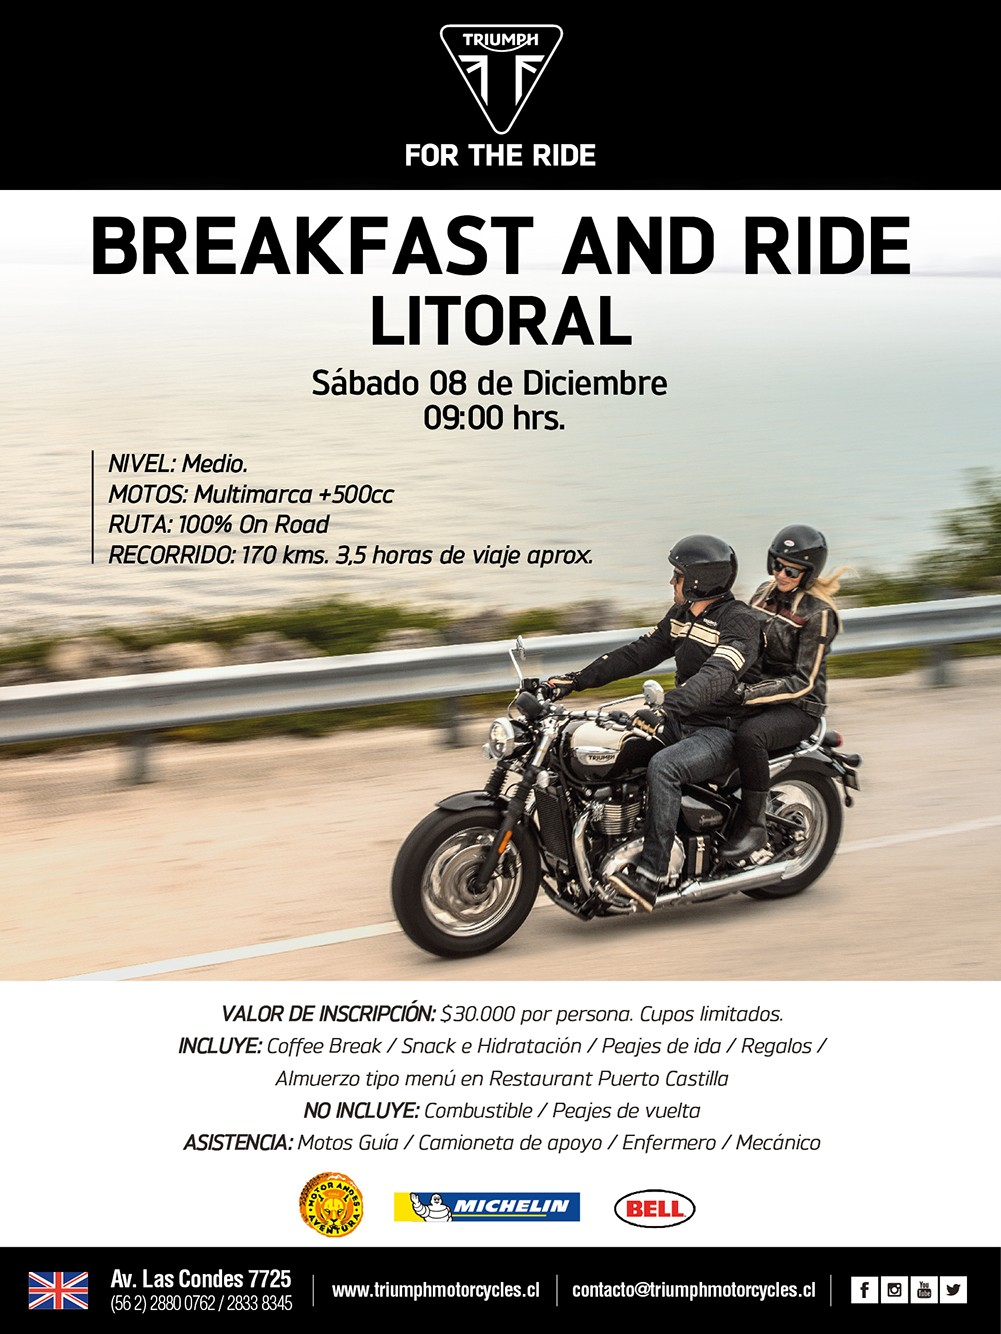 Breakfast and Ride Litoral